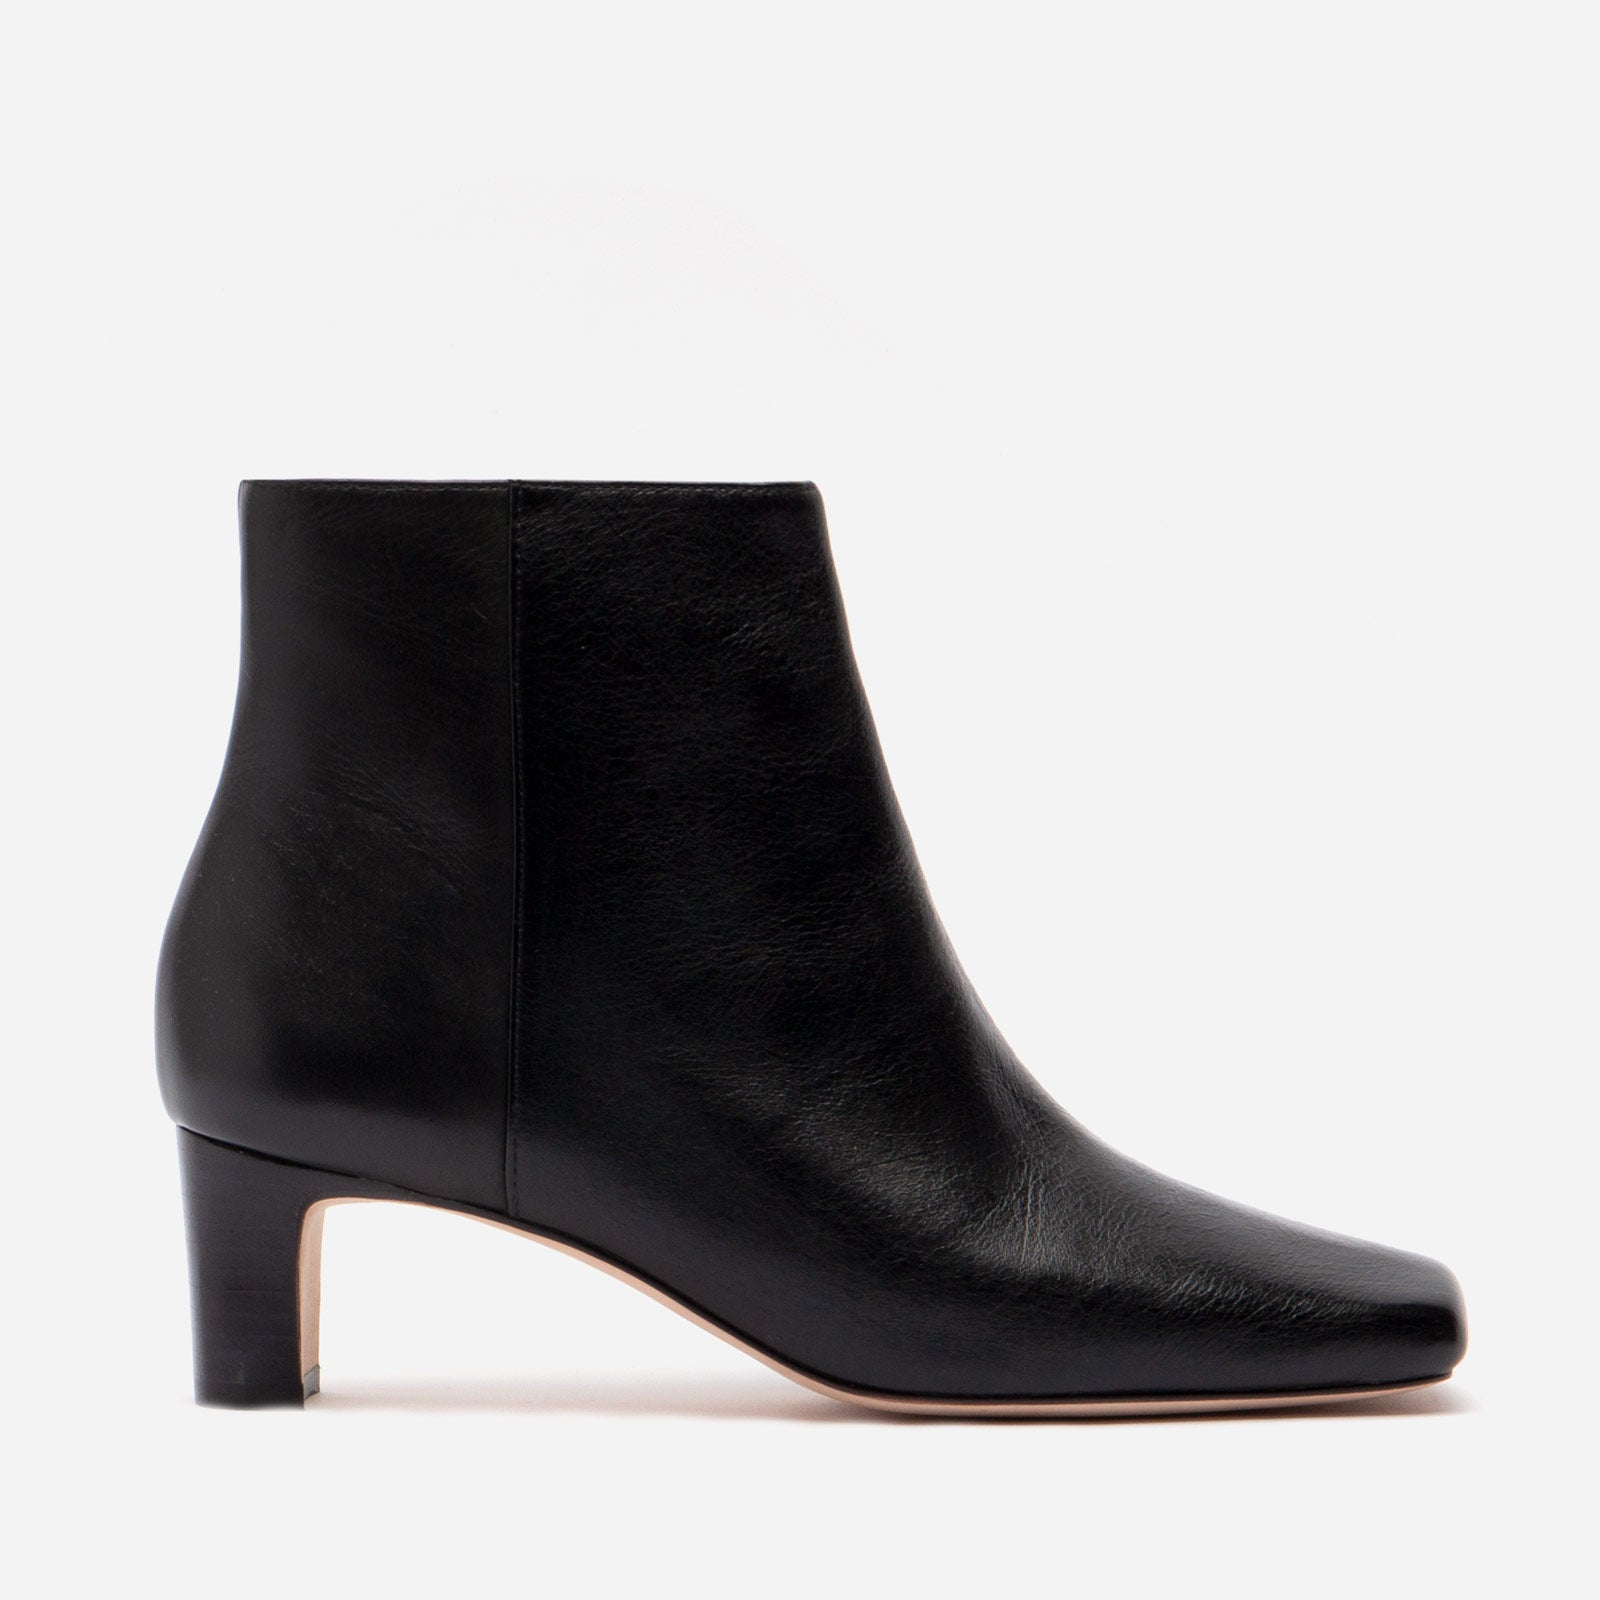 Eleanor Boot Naplak Black